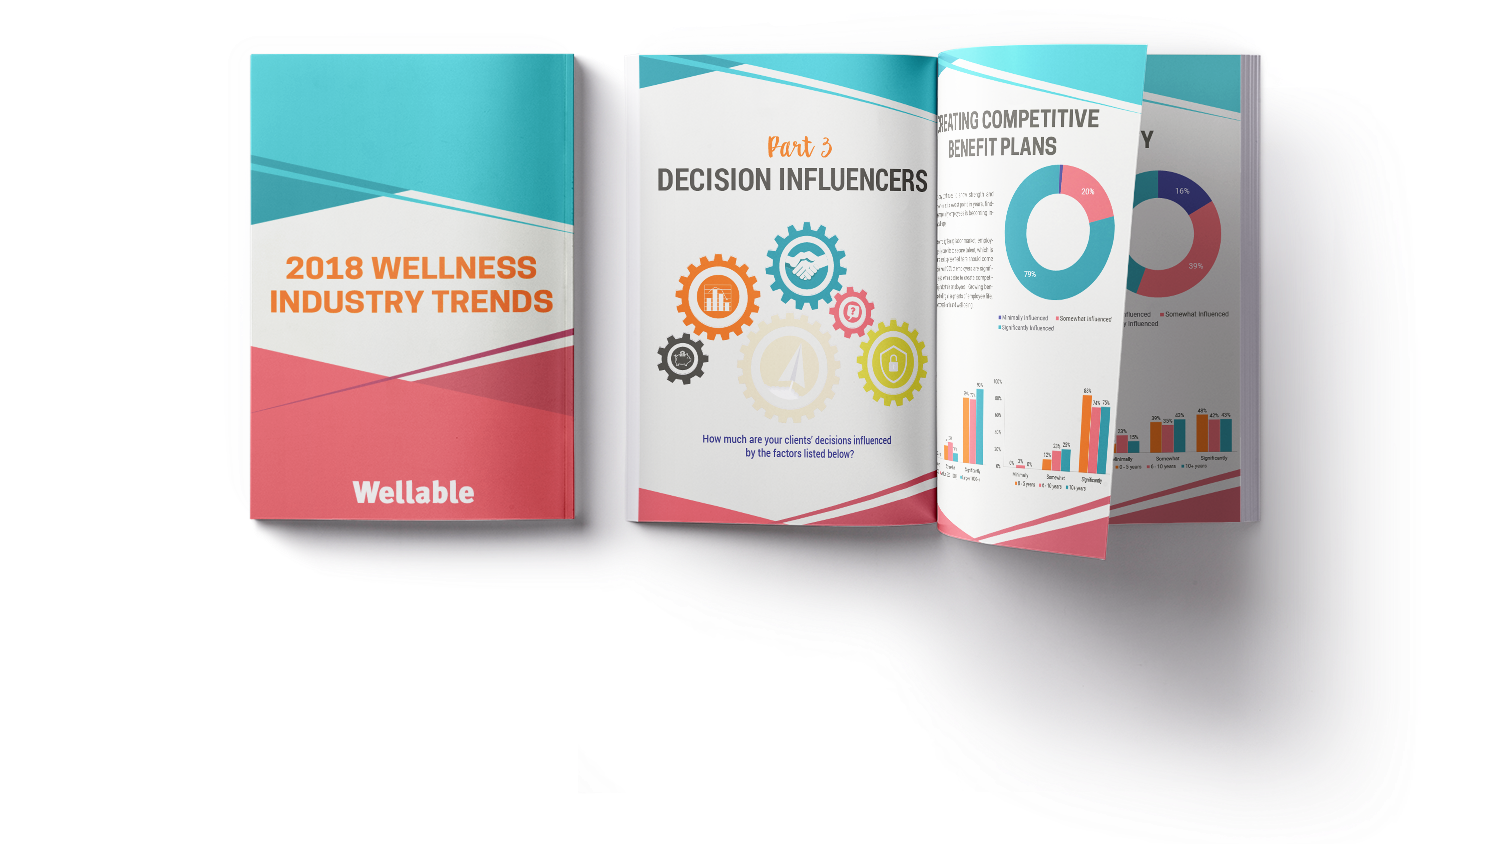 2018 Wellness Industry Trends Report Cover.png